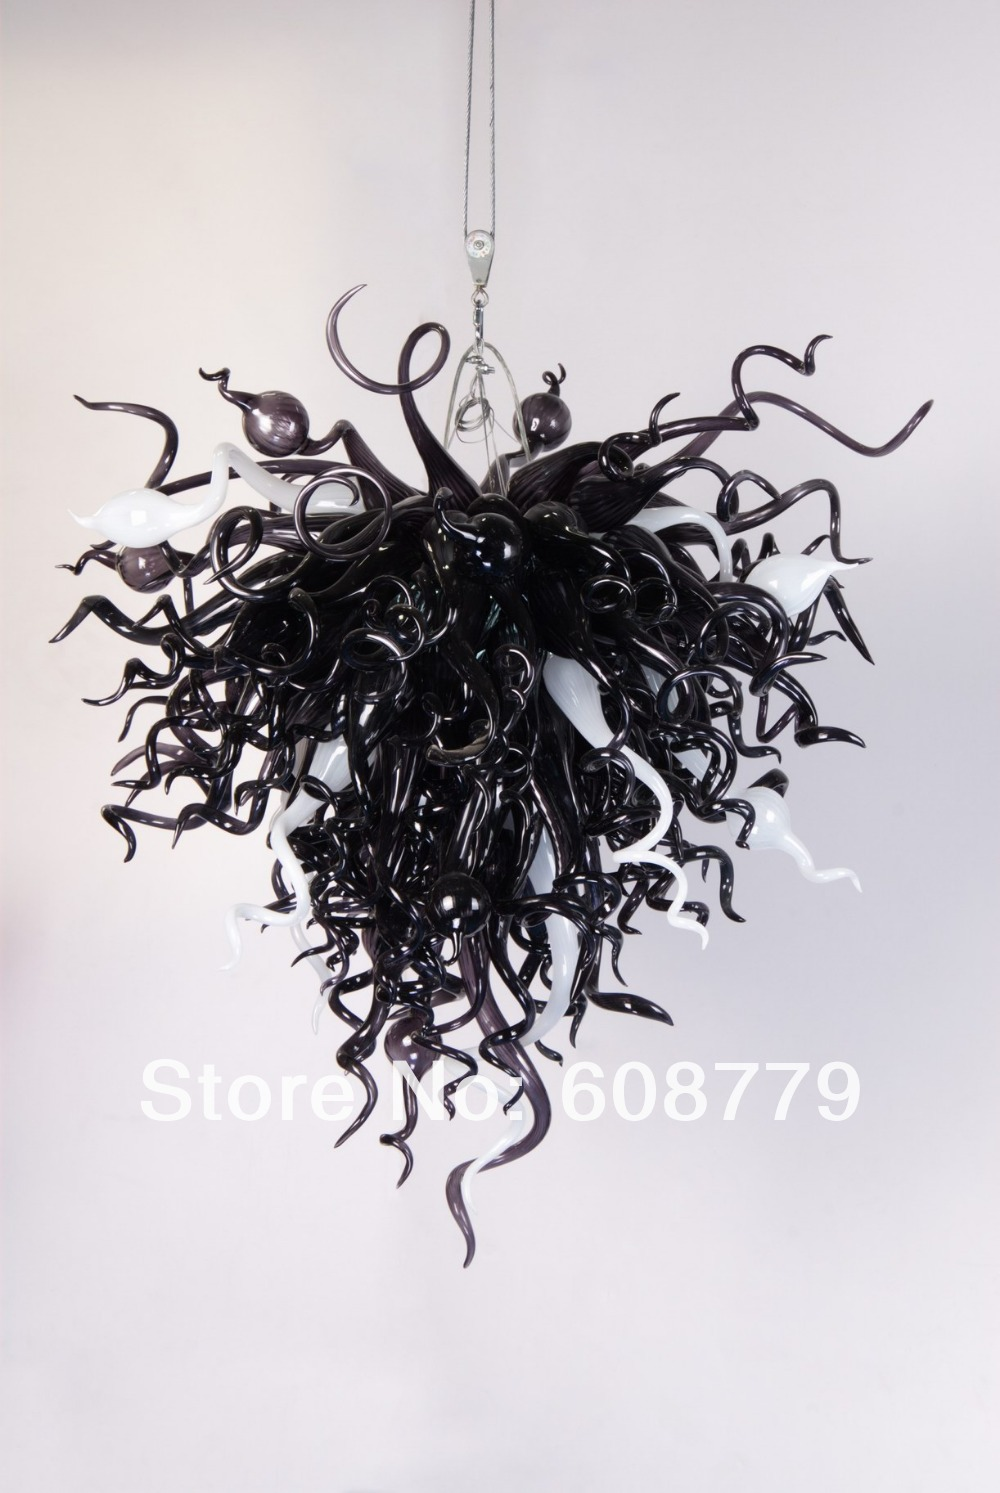 Design Black Contemporary Chandelier 15 Modern and – Modern Black Chandelier